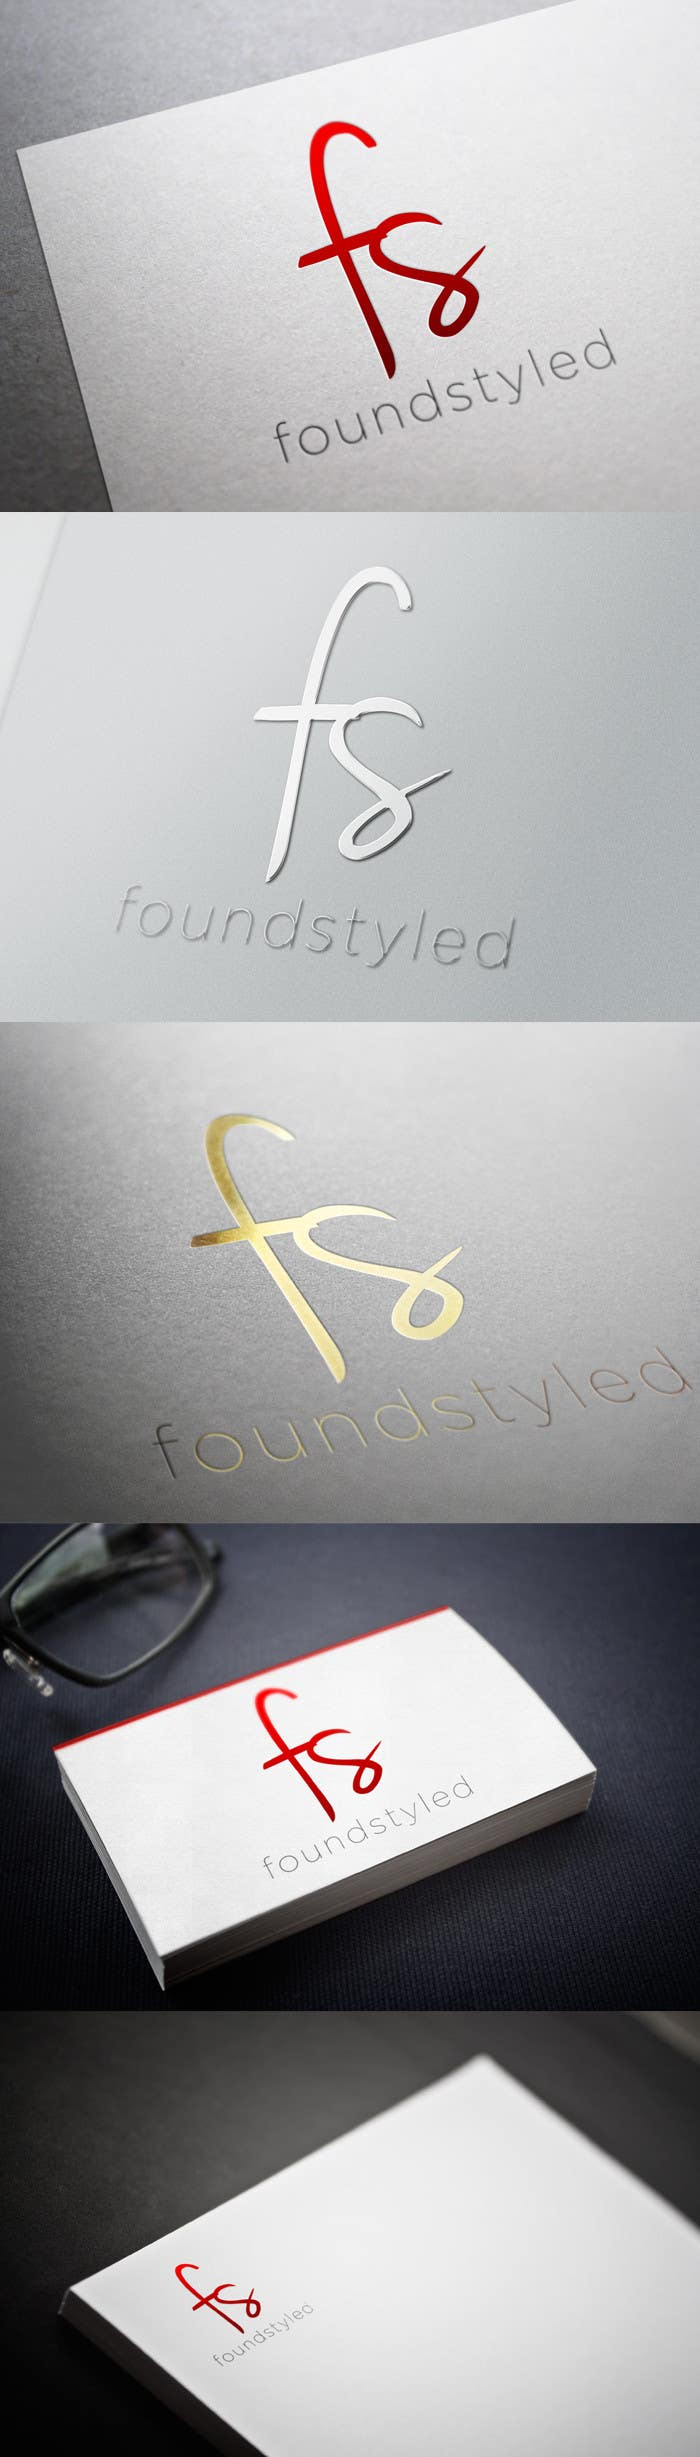 #22 for Design a Logo for 'foundstyled' by toybox29